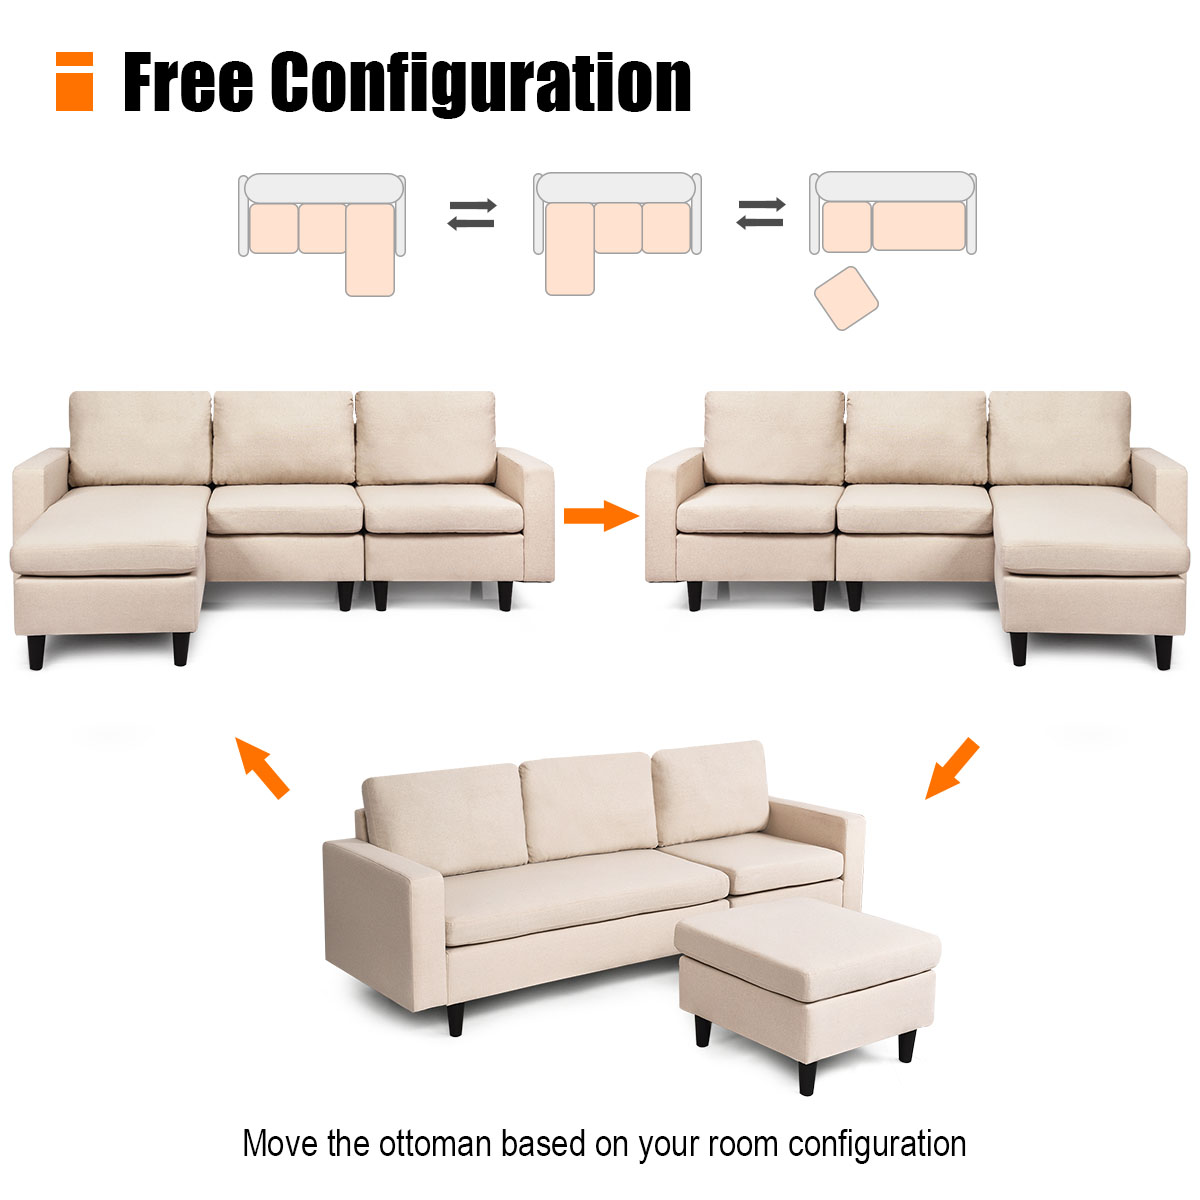 Costway Convertible Sectional Sofa Couch Fabric L Shaped Couch Massage Cushion Beige Walmart Com Walmart Com